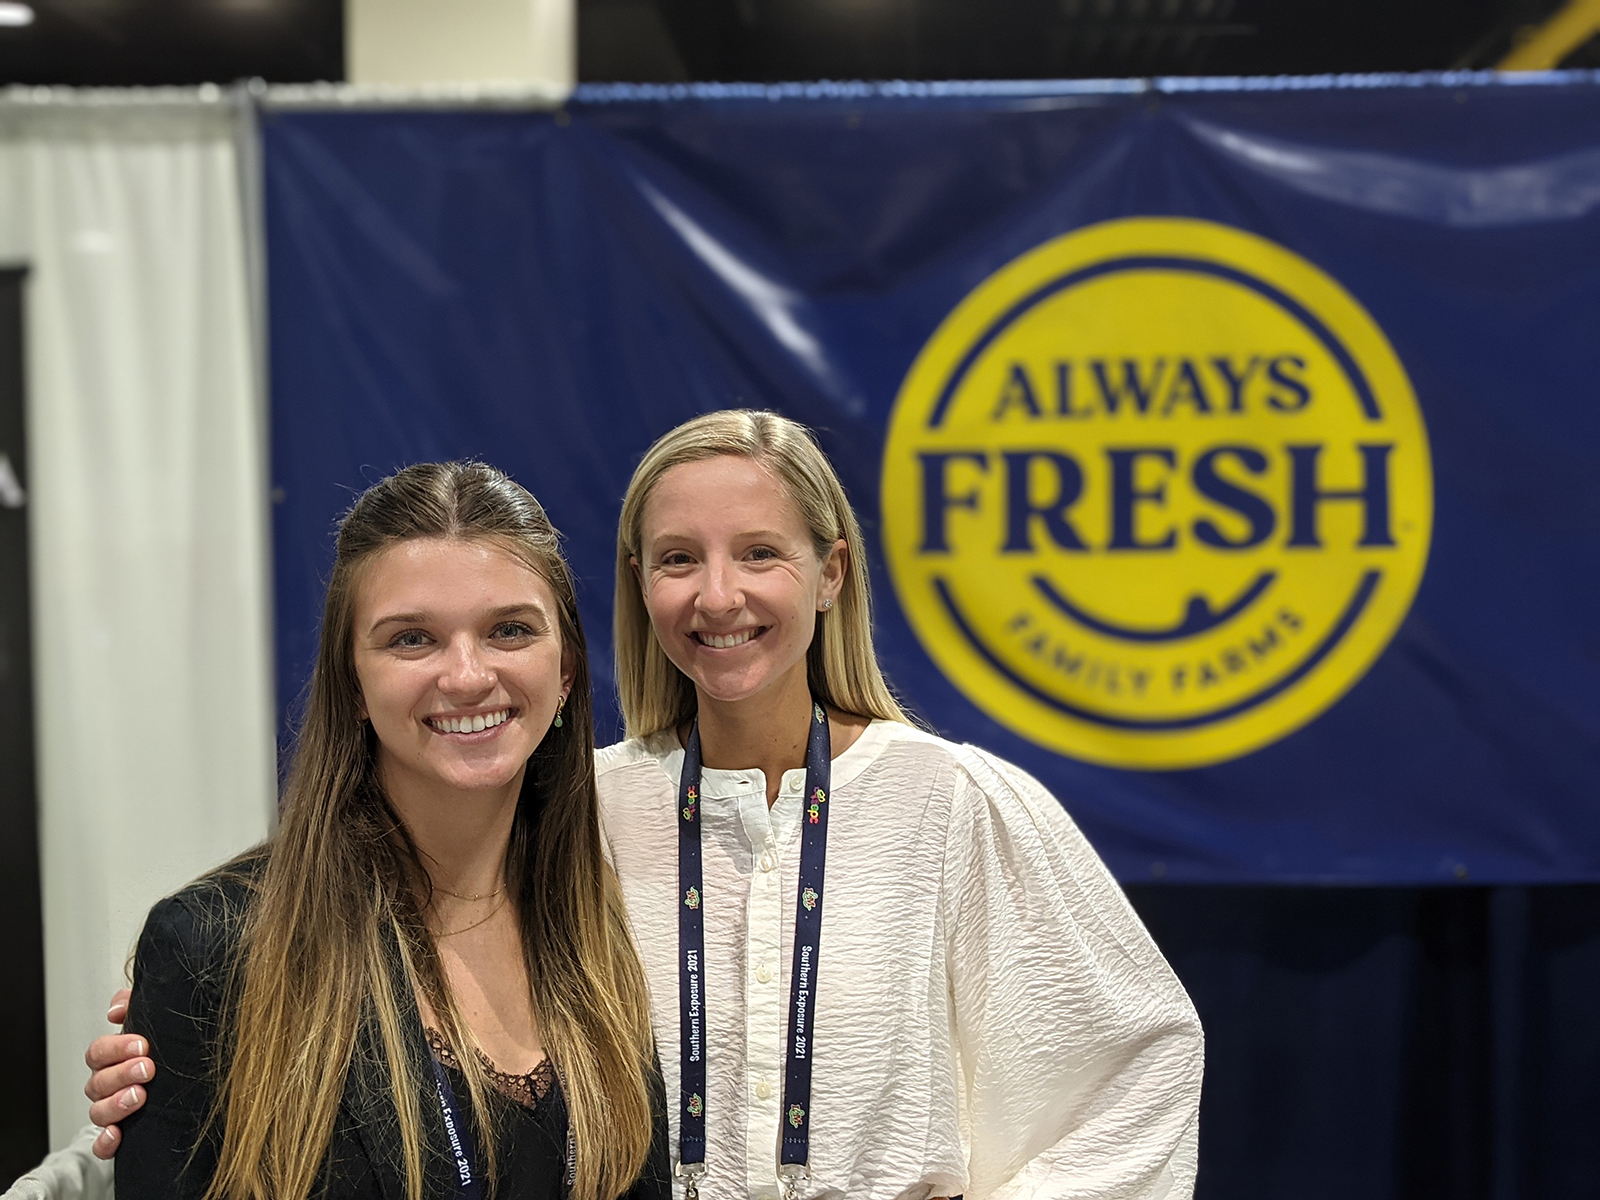 Sarah Savage and Bella Giordano of Always Fresh Farms.